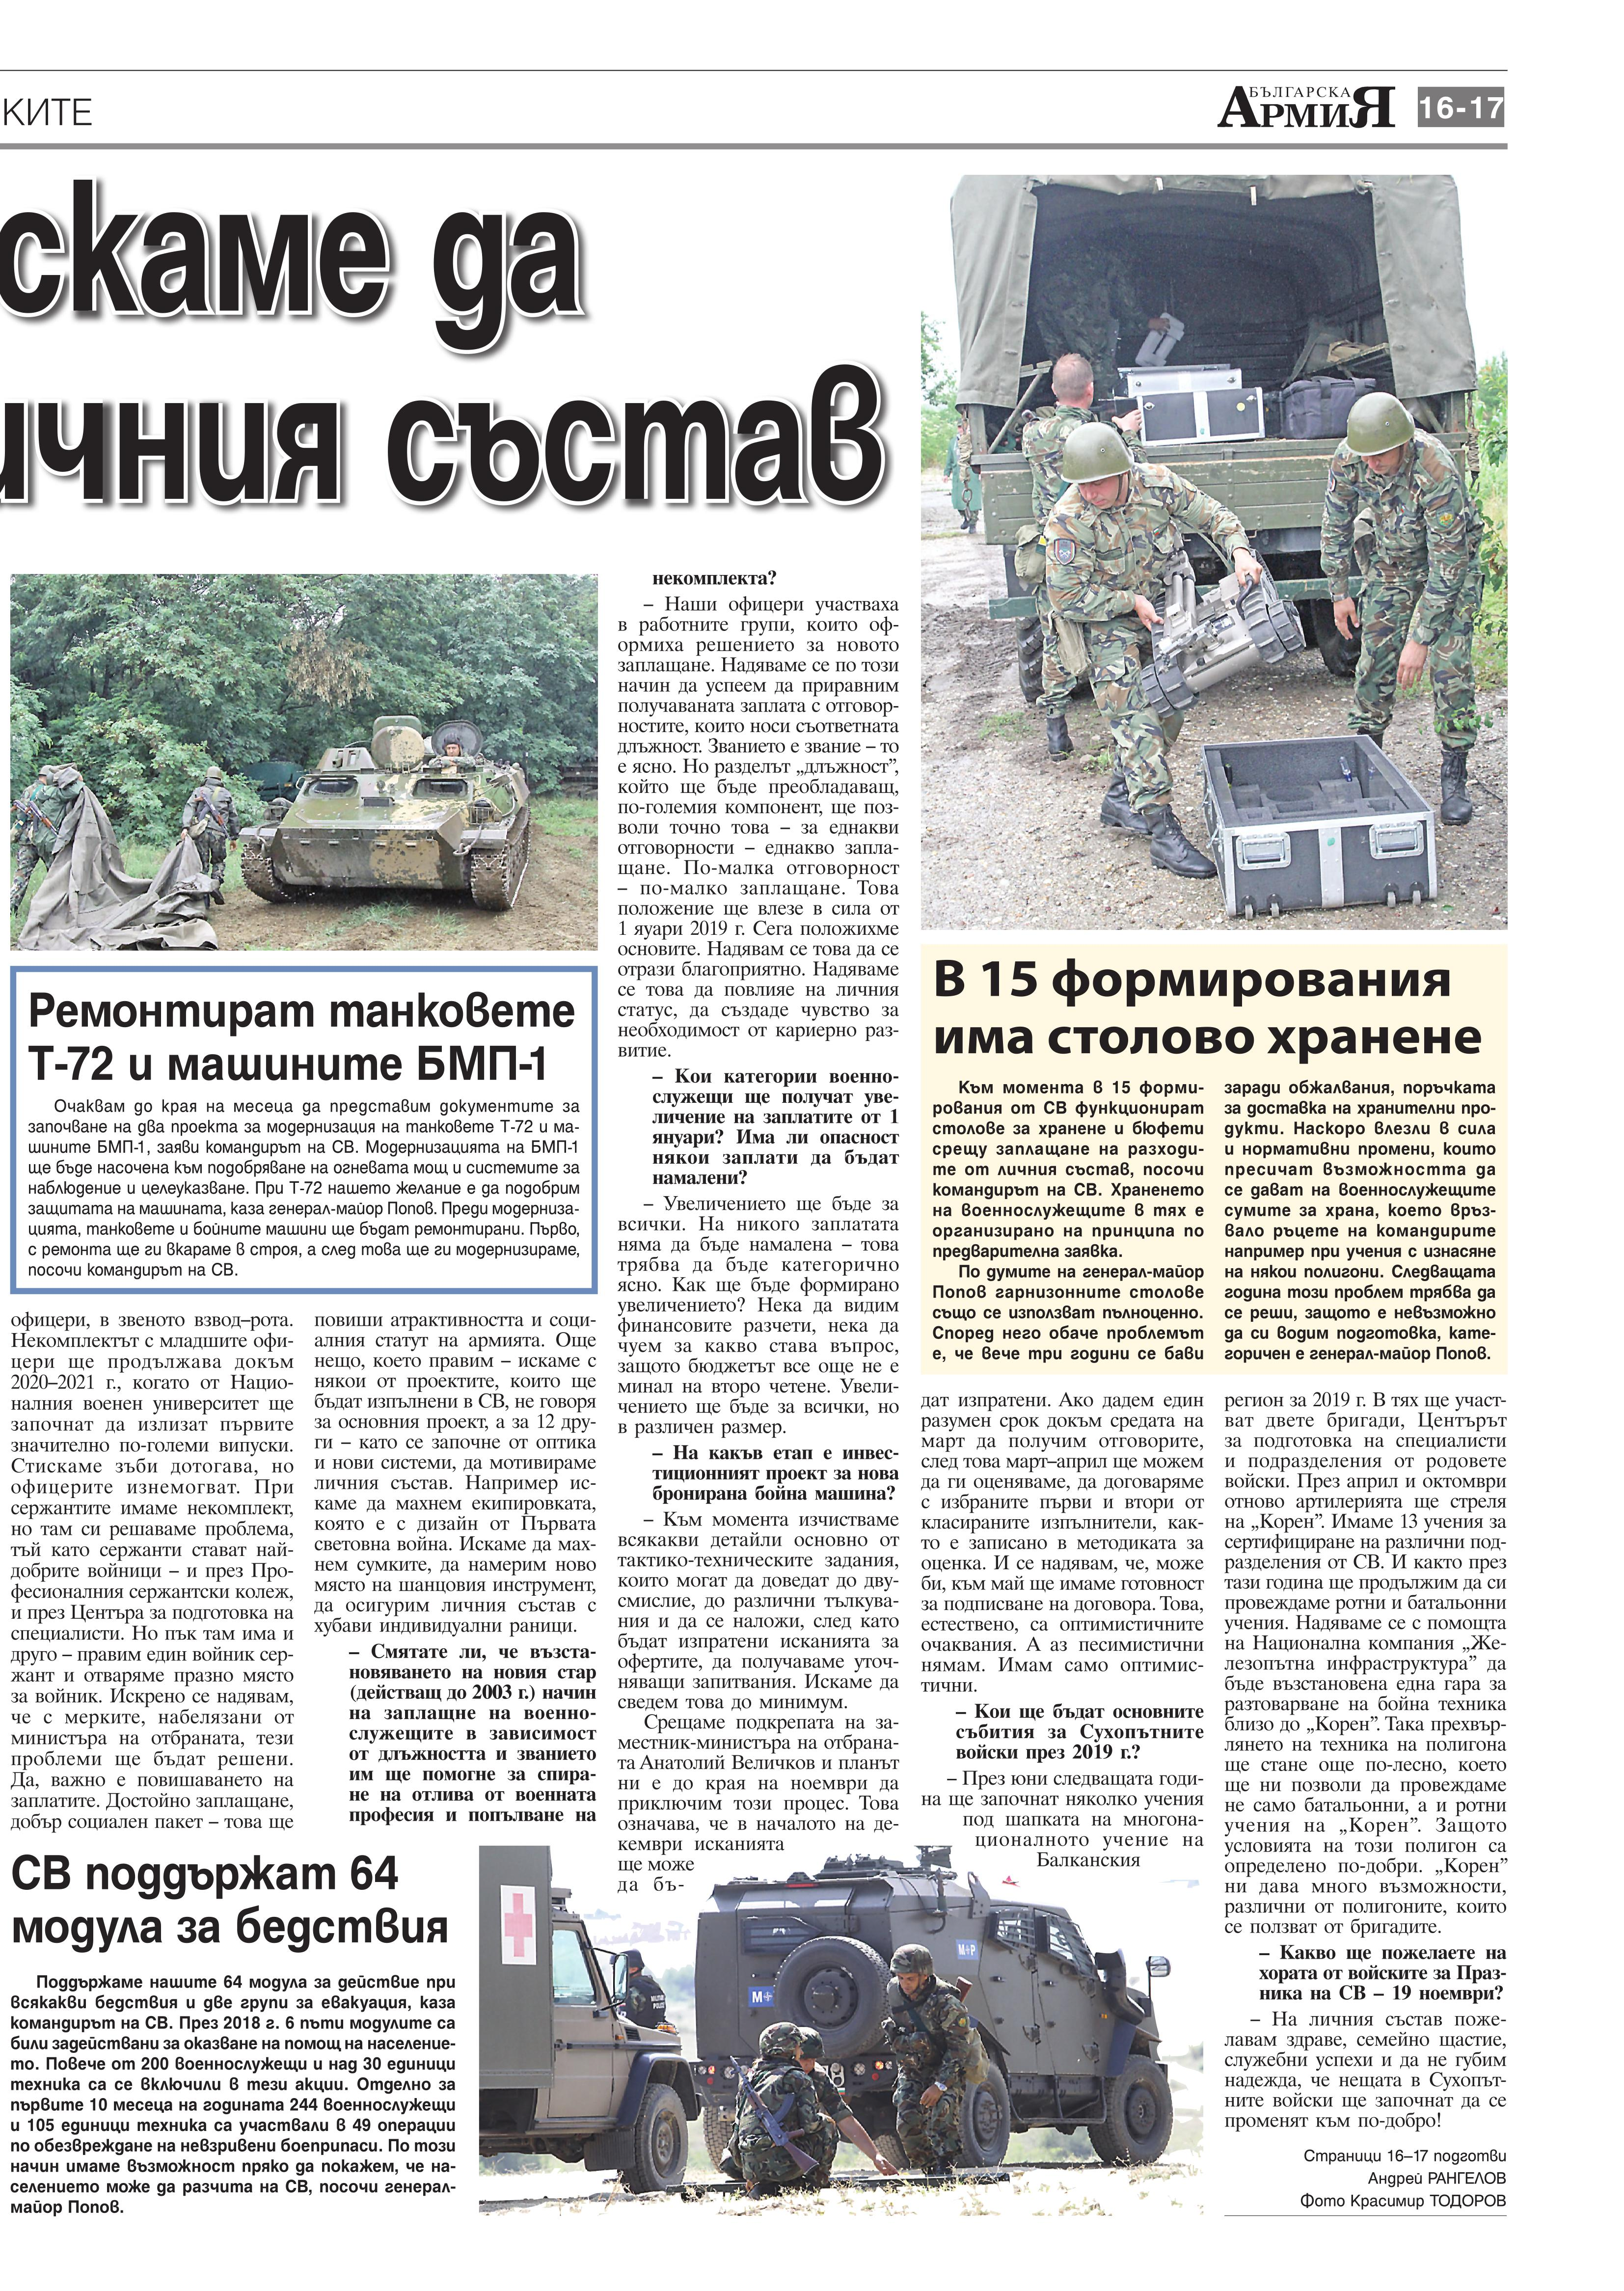 https://armymedia.bg/wp-content/uploads/2015/06/17.page1_-73.jpg